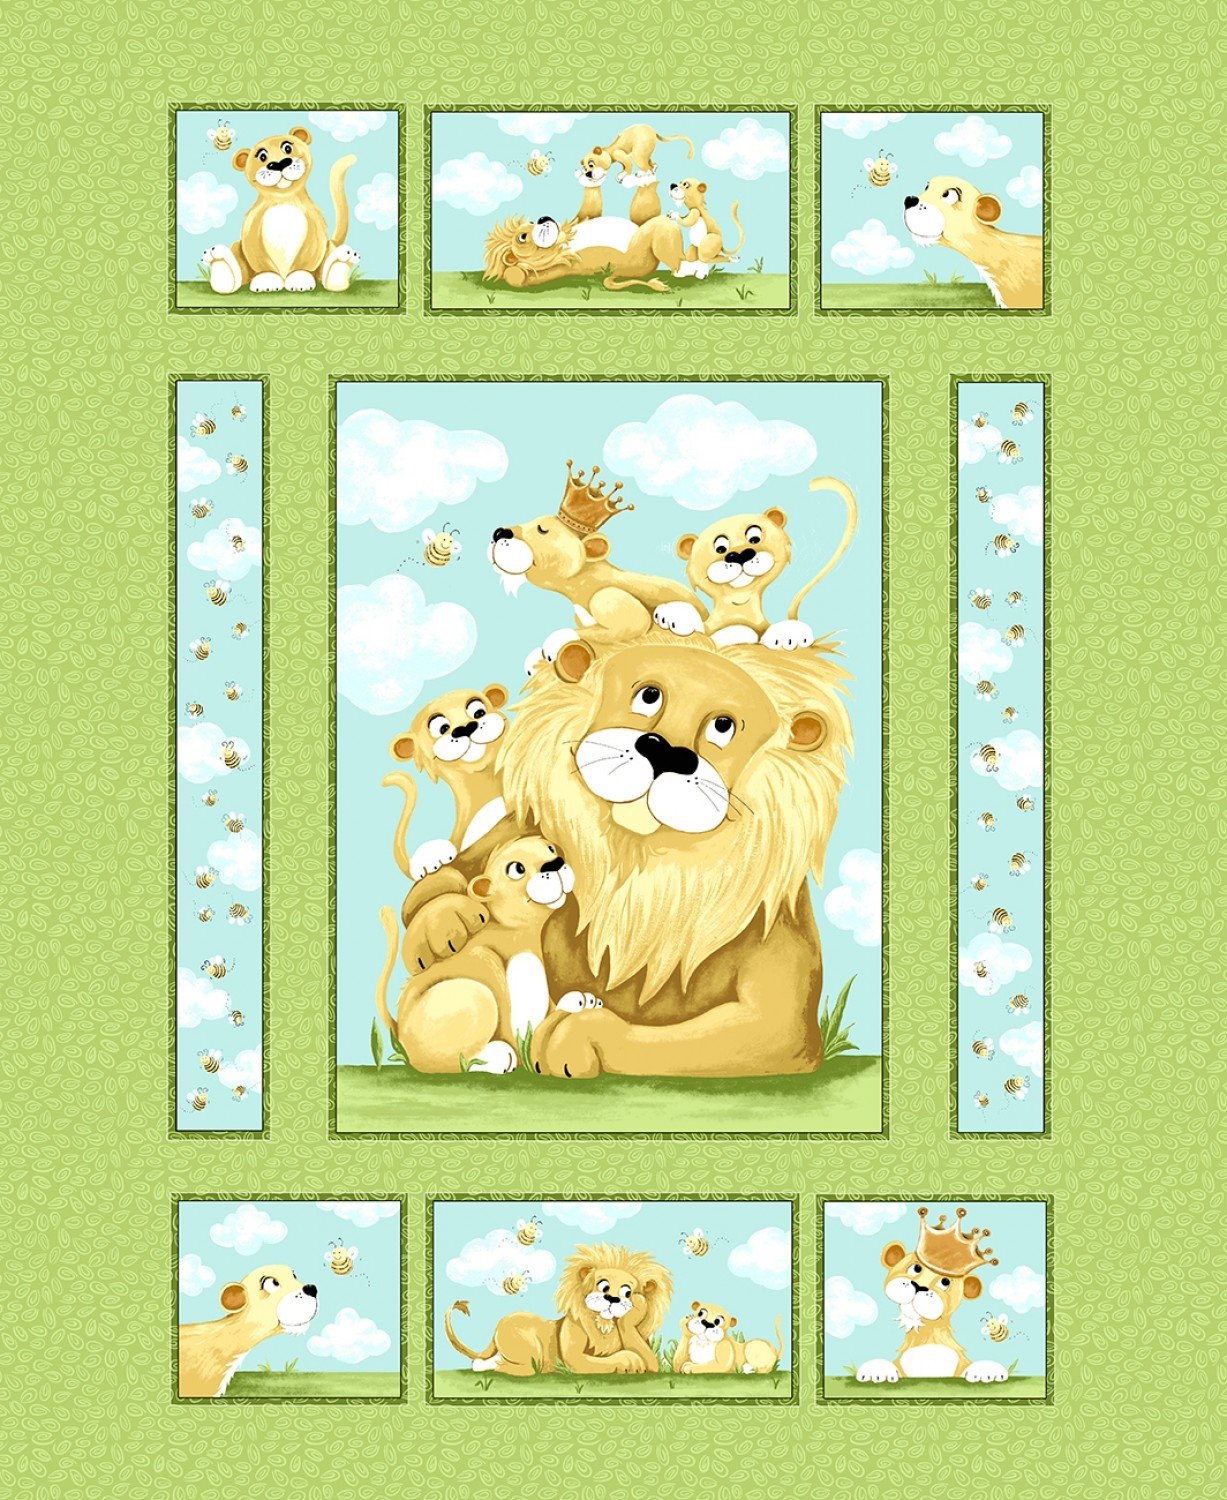 Susybee Lyon The Lion Fabric Panel 36 x 44 Inches from Susybee Fabrics